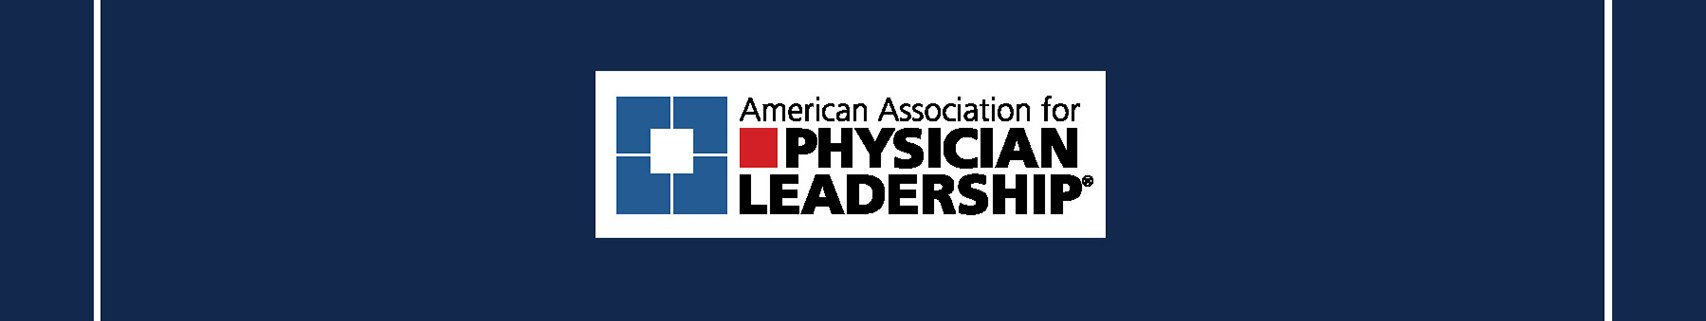 All Physicians are Leaders: Reflections on Inspiring Change Together for Better Healthcare by Peter B. Angood MD, FRCS(C), FACS, MCCM, FAAPL(Hon)